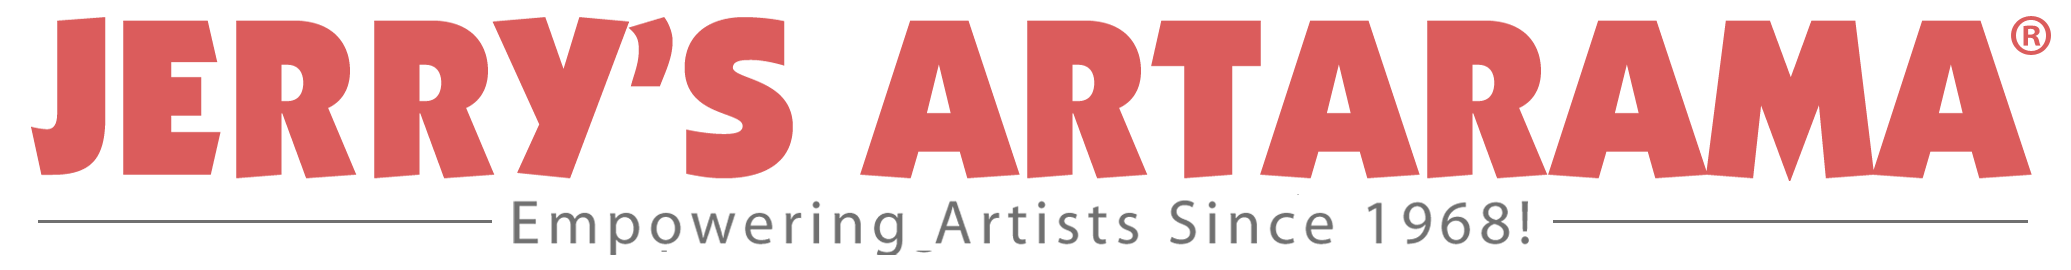 Jerry's Artarama Online Discount Art Supplies and Materials Superstore